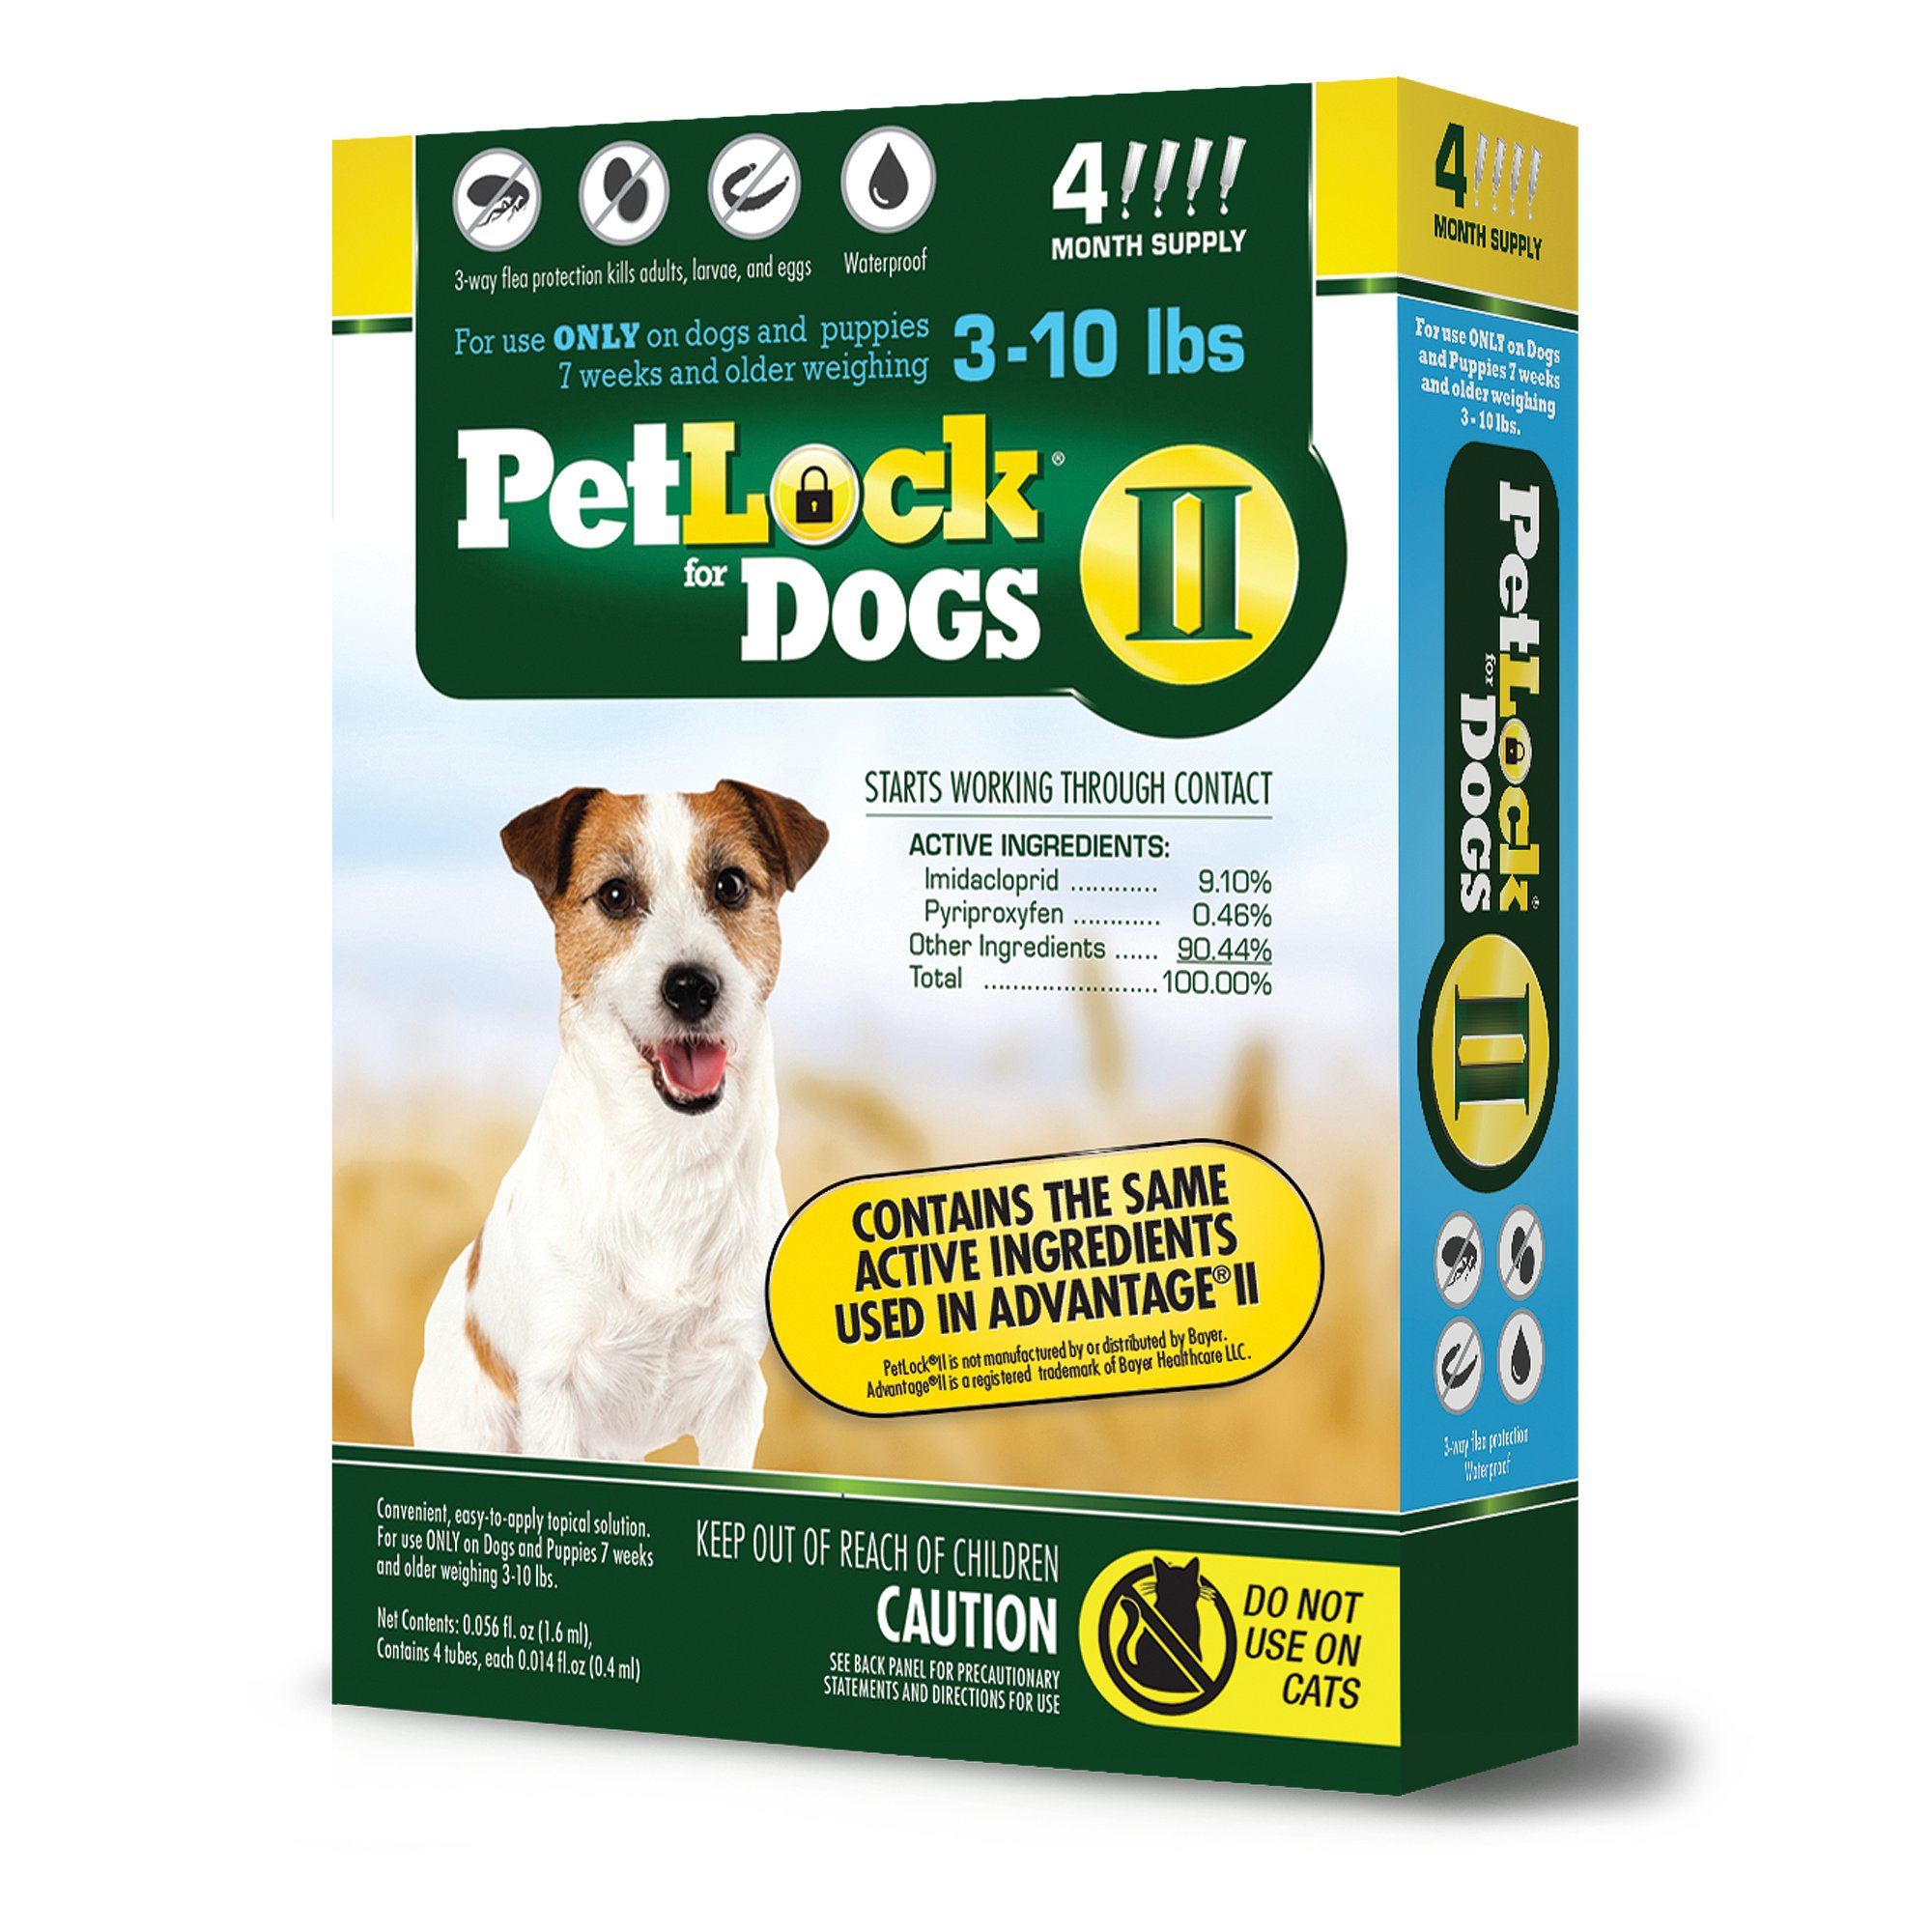 PetLock II Flea Treatment for Dogs, 4 Month Supply